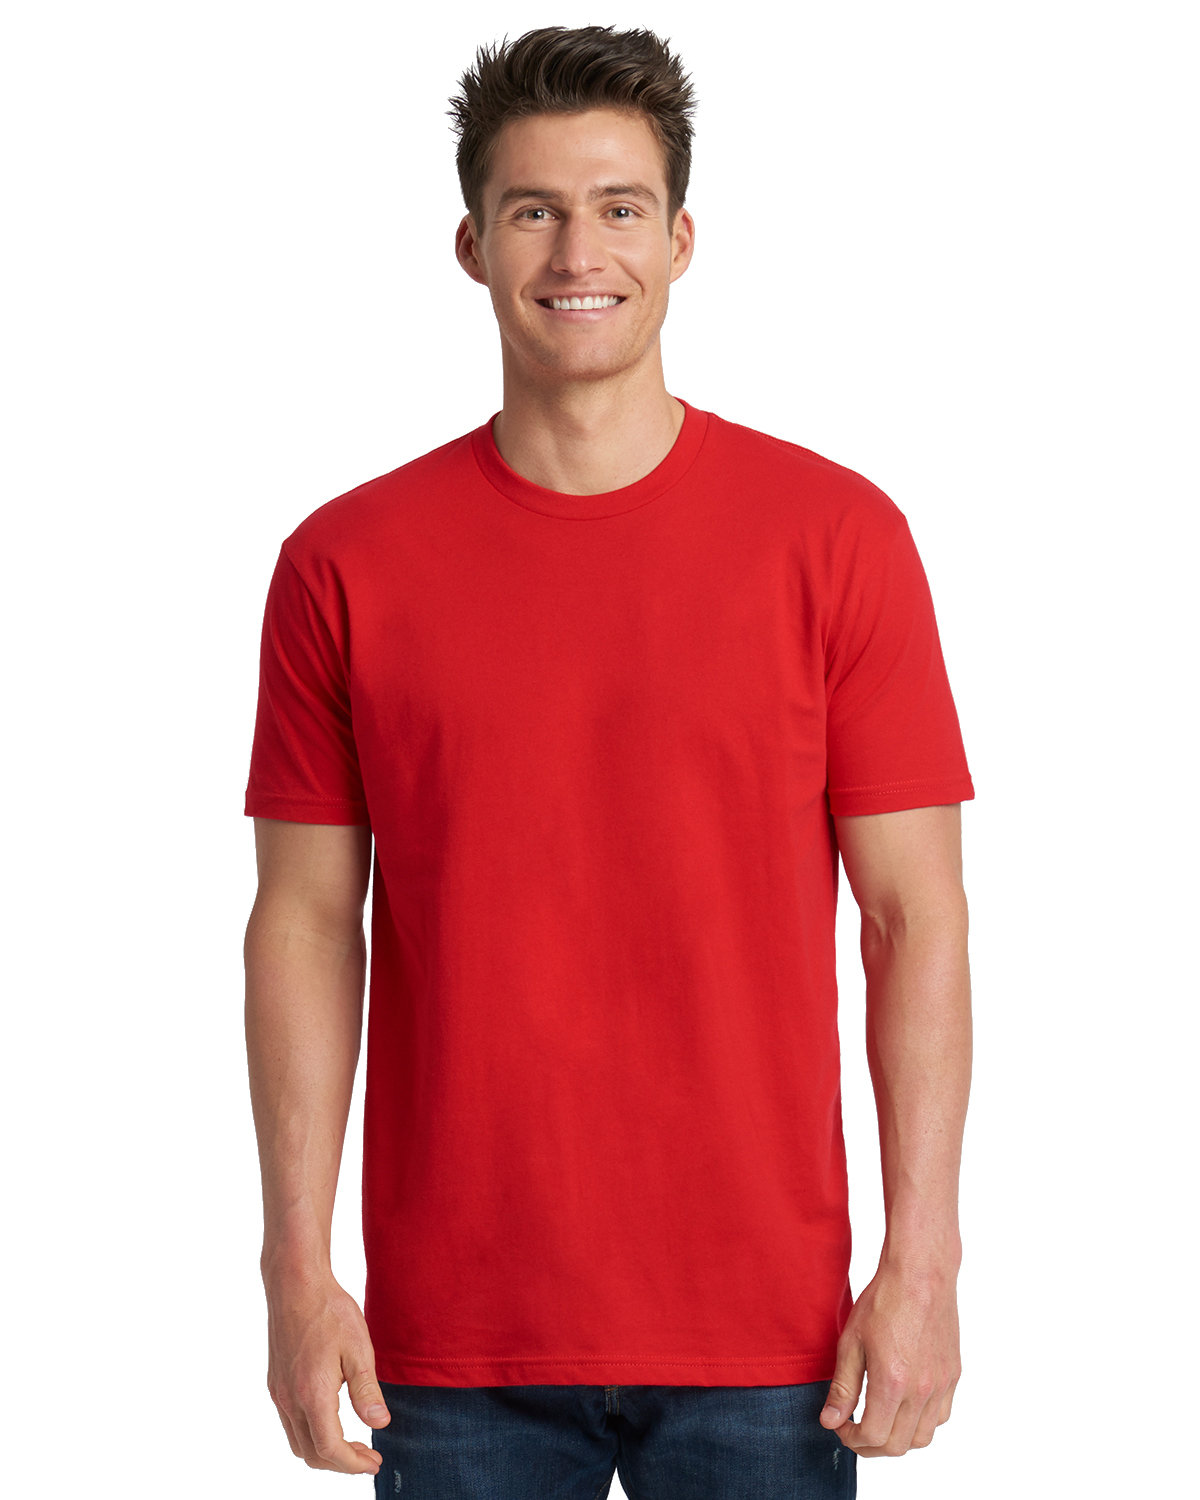 Next Level Men's Made in USA Cotton Crew RED